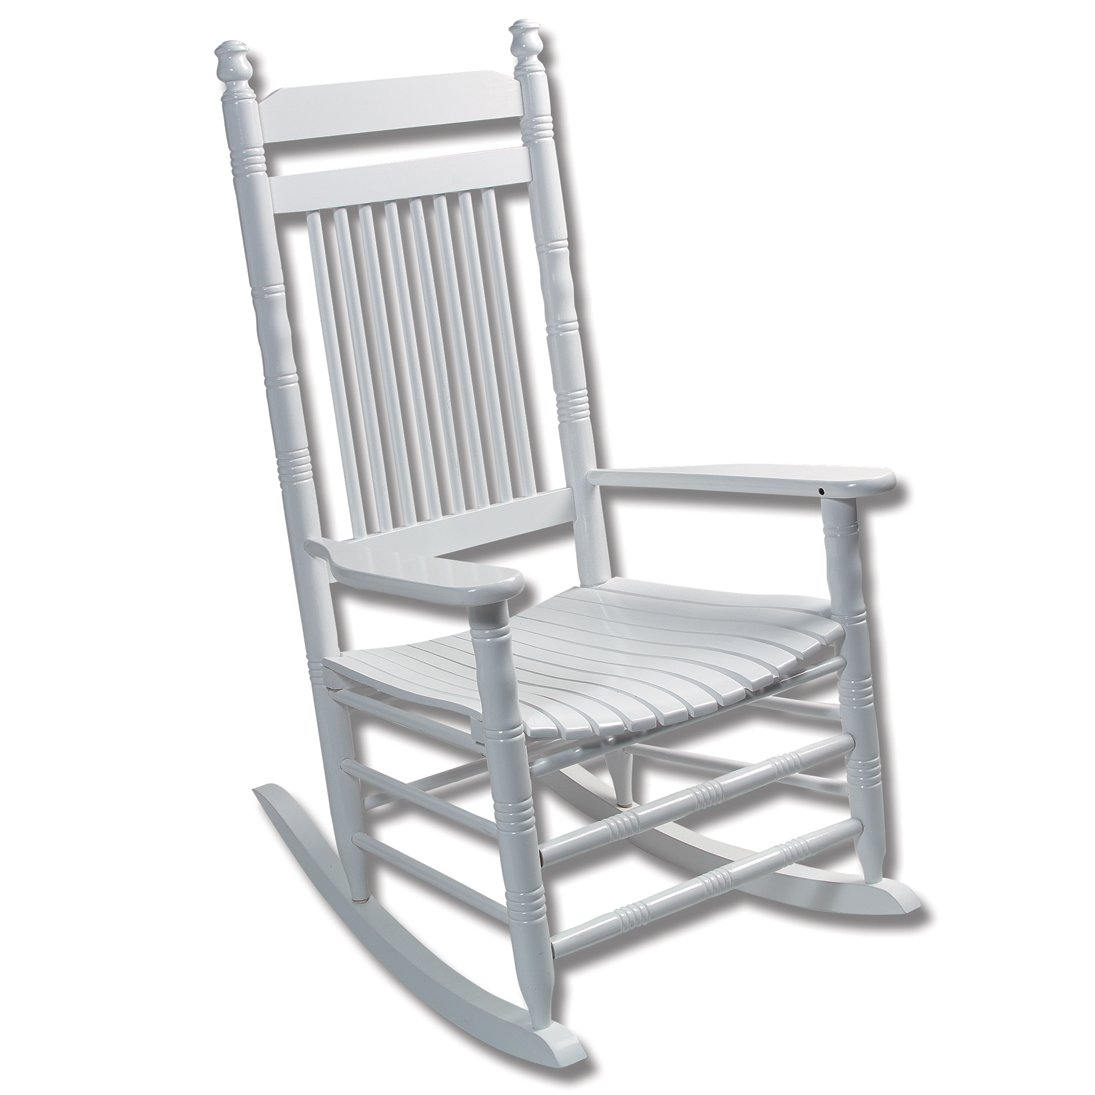 Adult Slat Rocking Chair   Pure White | Home Furniture | Indoor Furniture | Rocking  Chairs | Cracker Barrel Old Country Store   Cracker Barrel Old Country ...